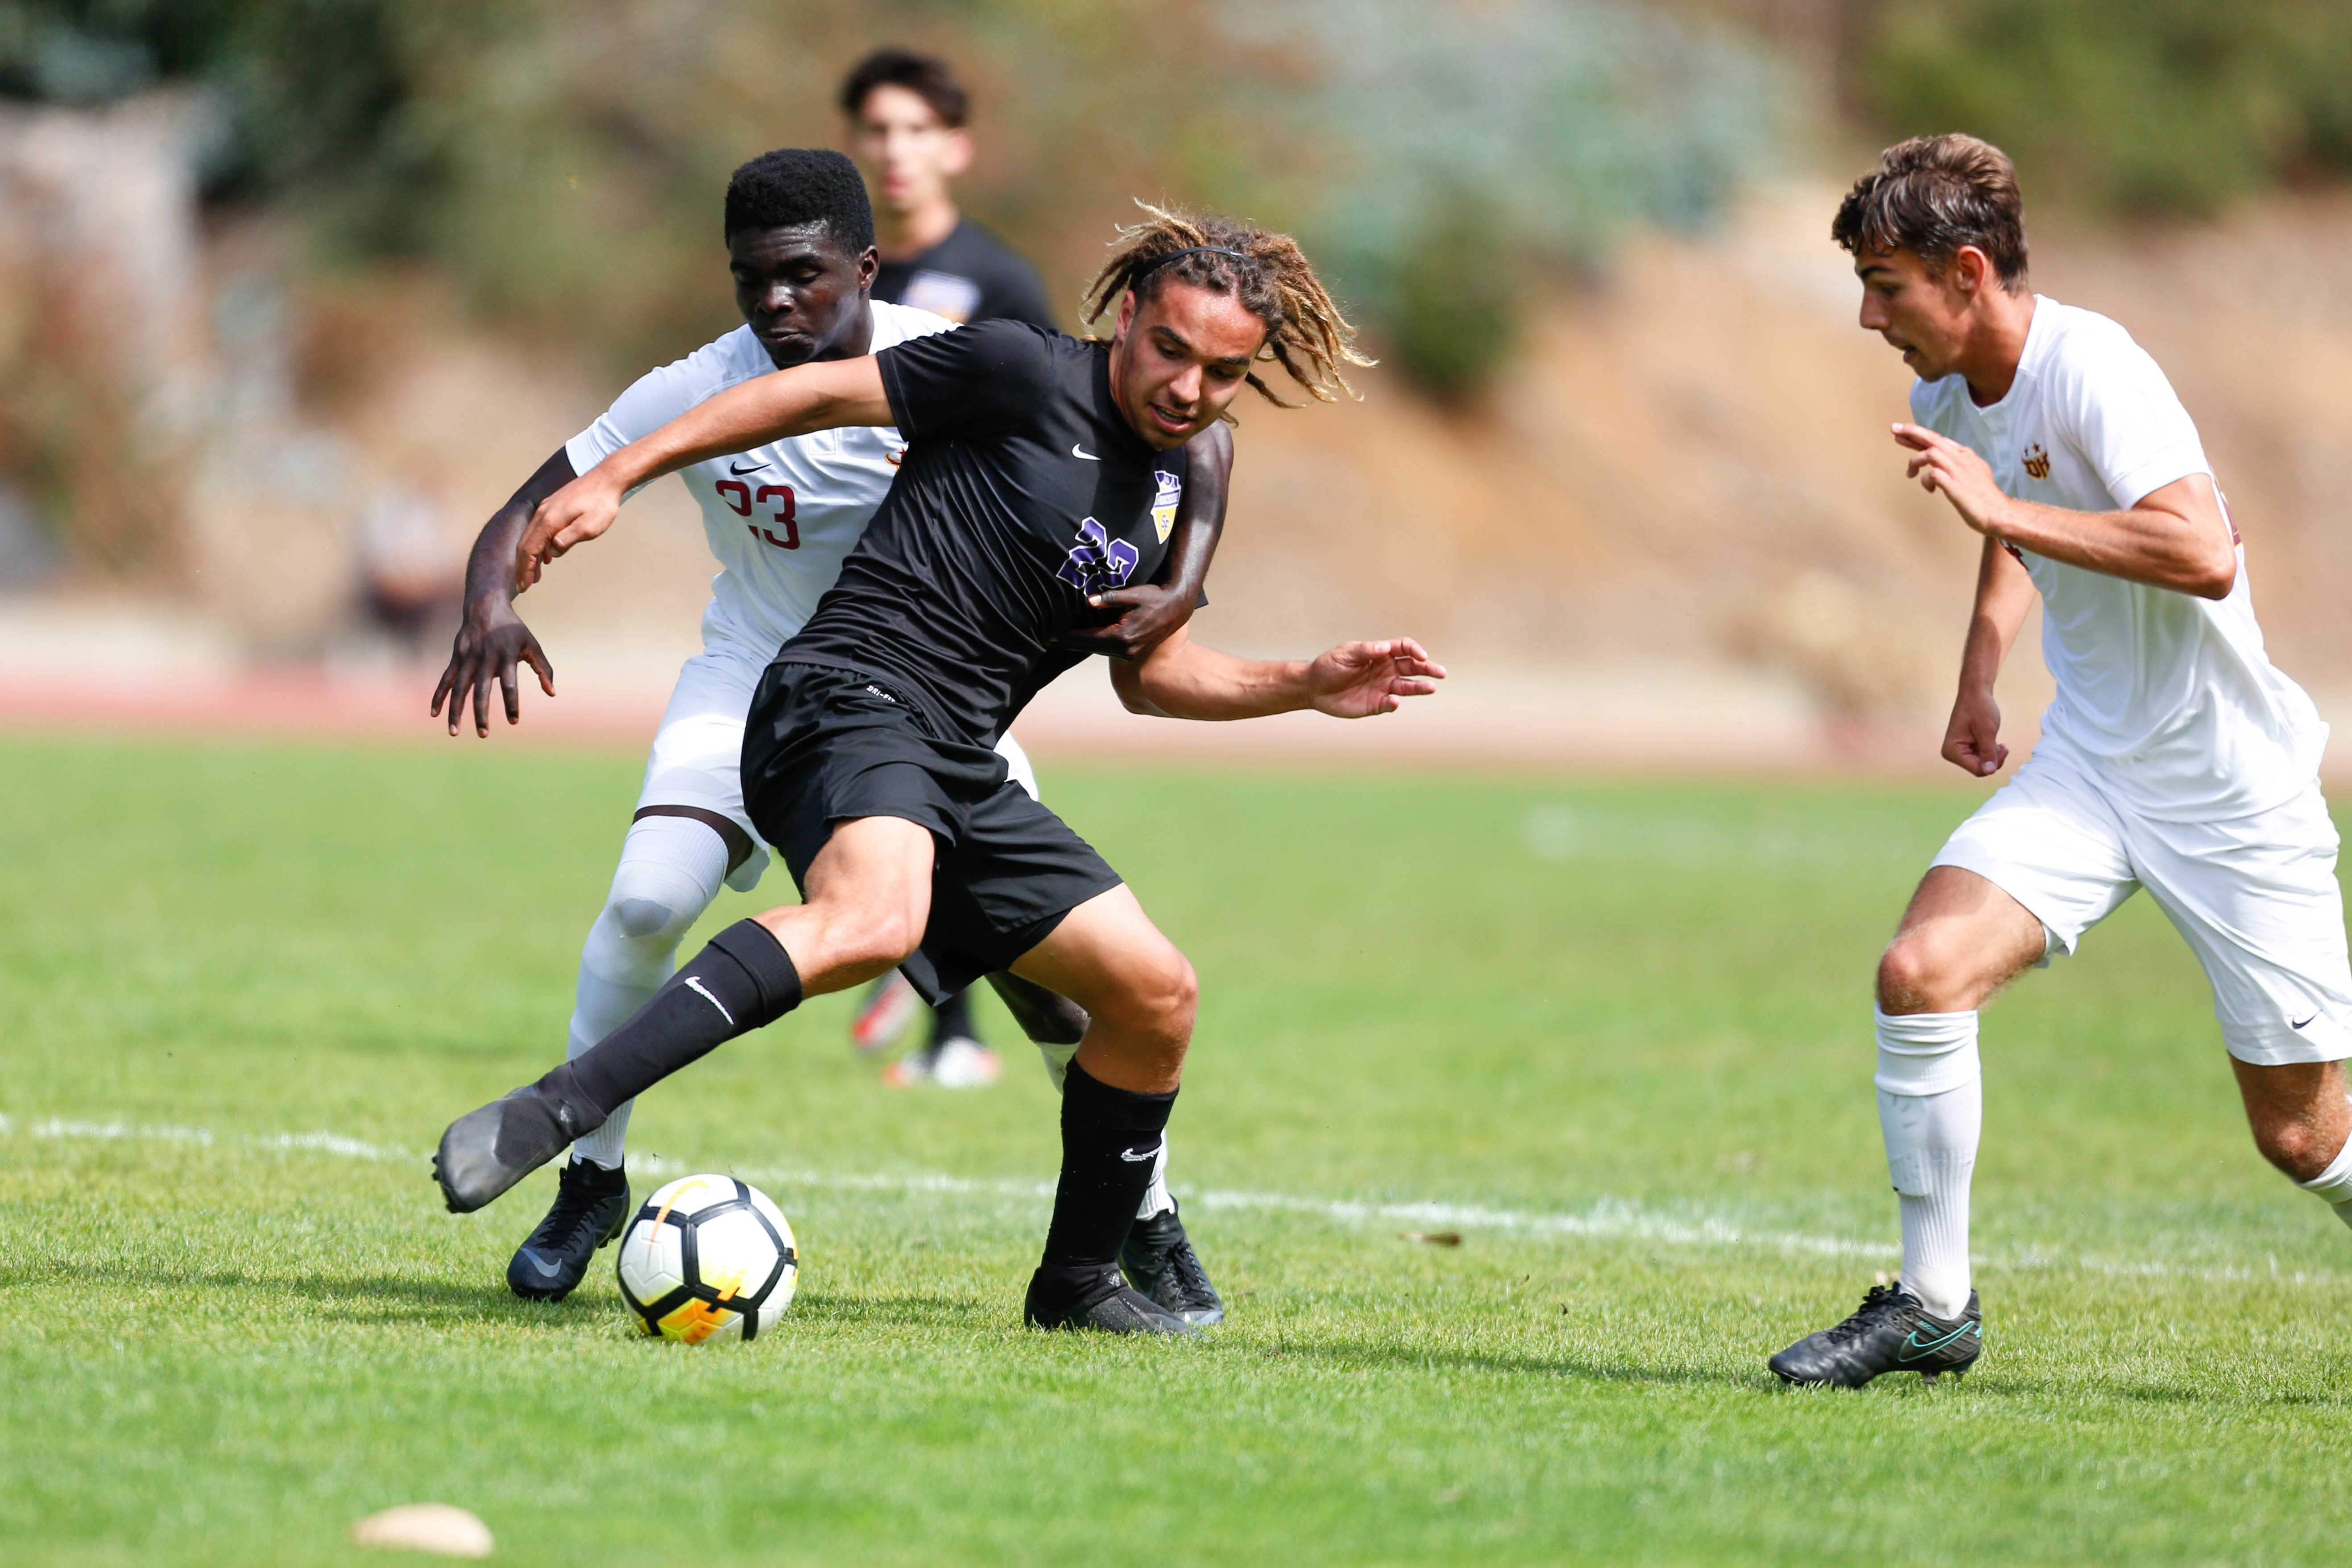 Gators men's soccer cruises by Cal State Dominguez Hills 3-0